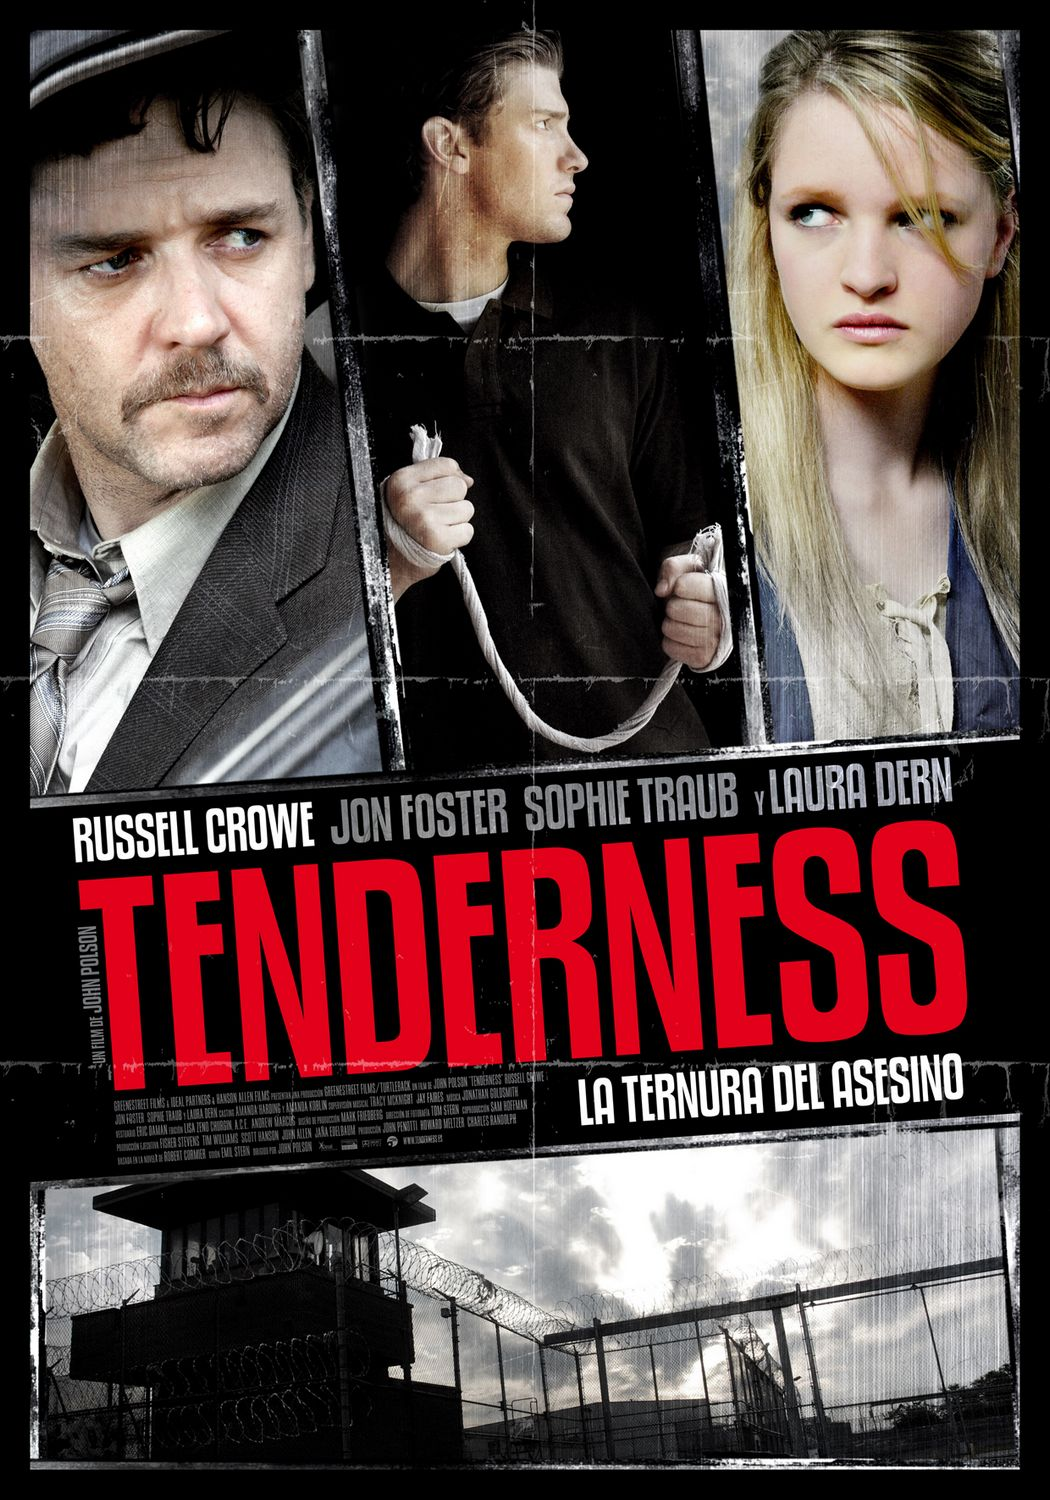 Tenderness 2009 Dvd Planet Store